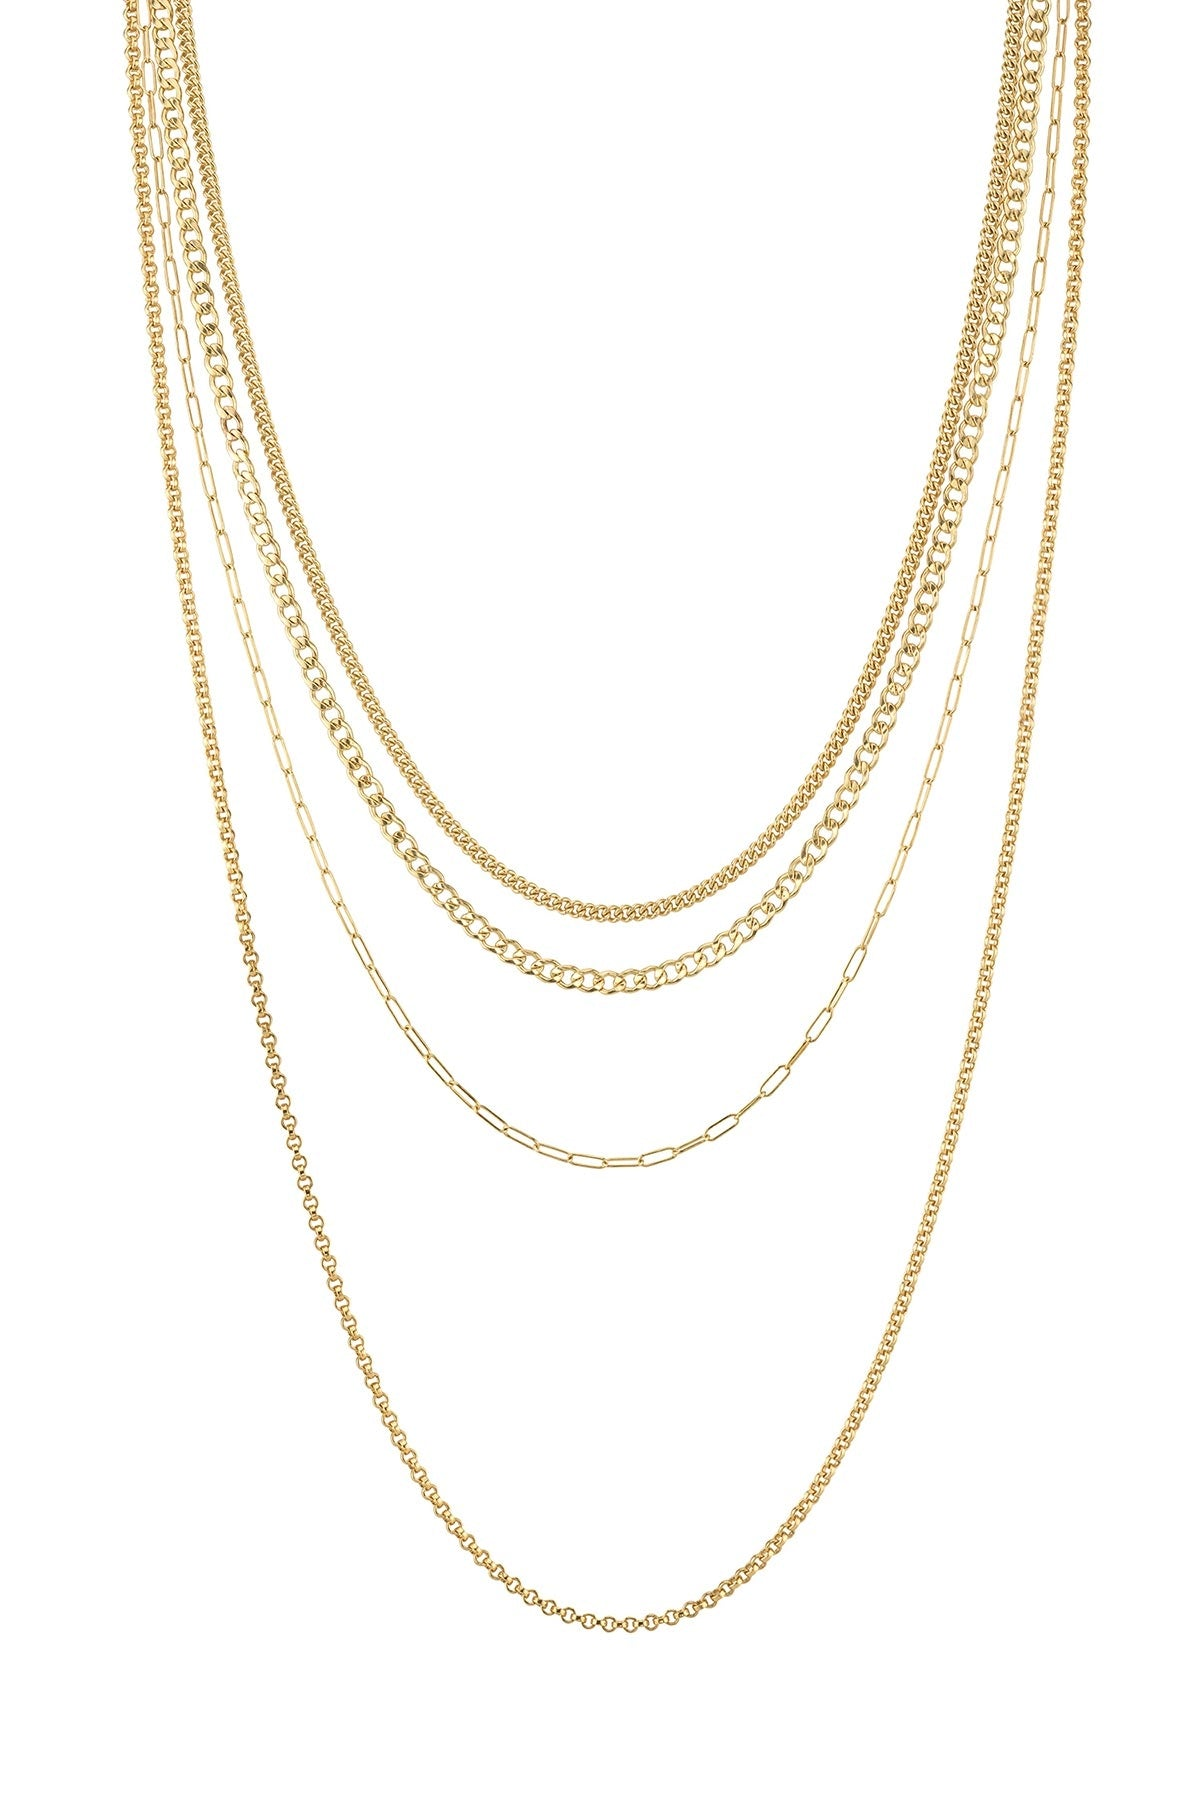 MULTI LAYER CHAIN IN GOLD BY SLOAN